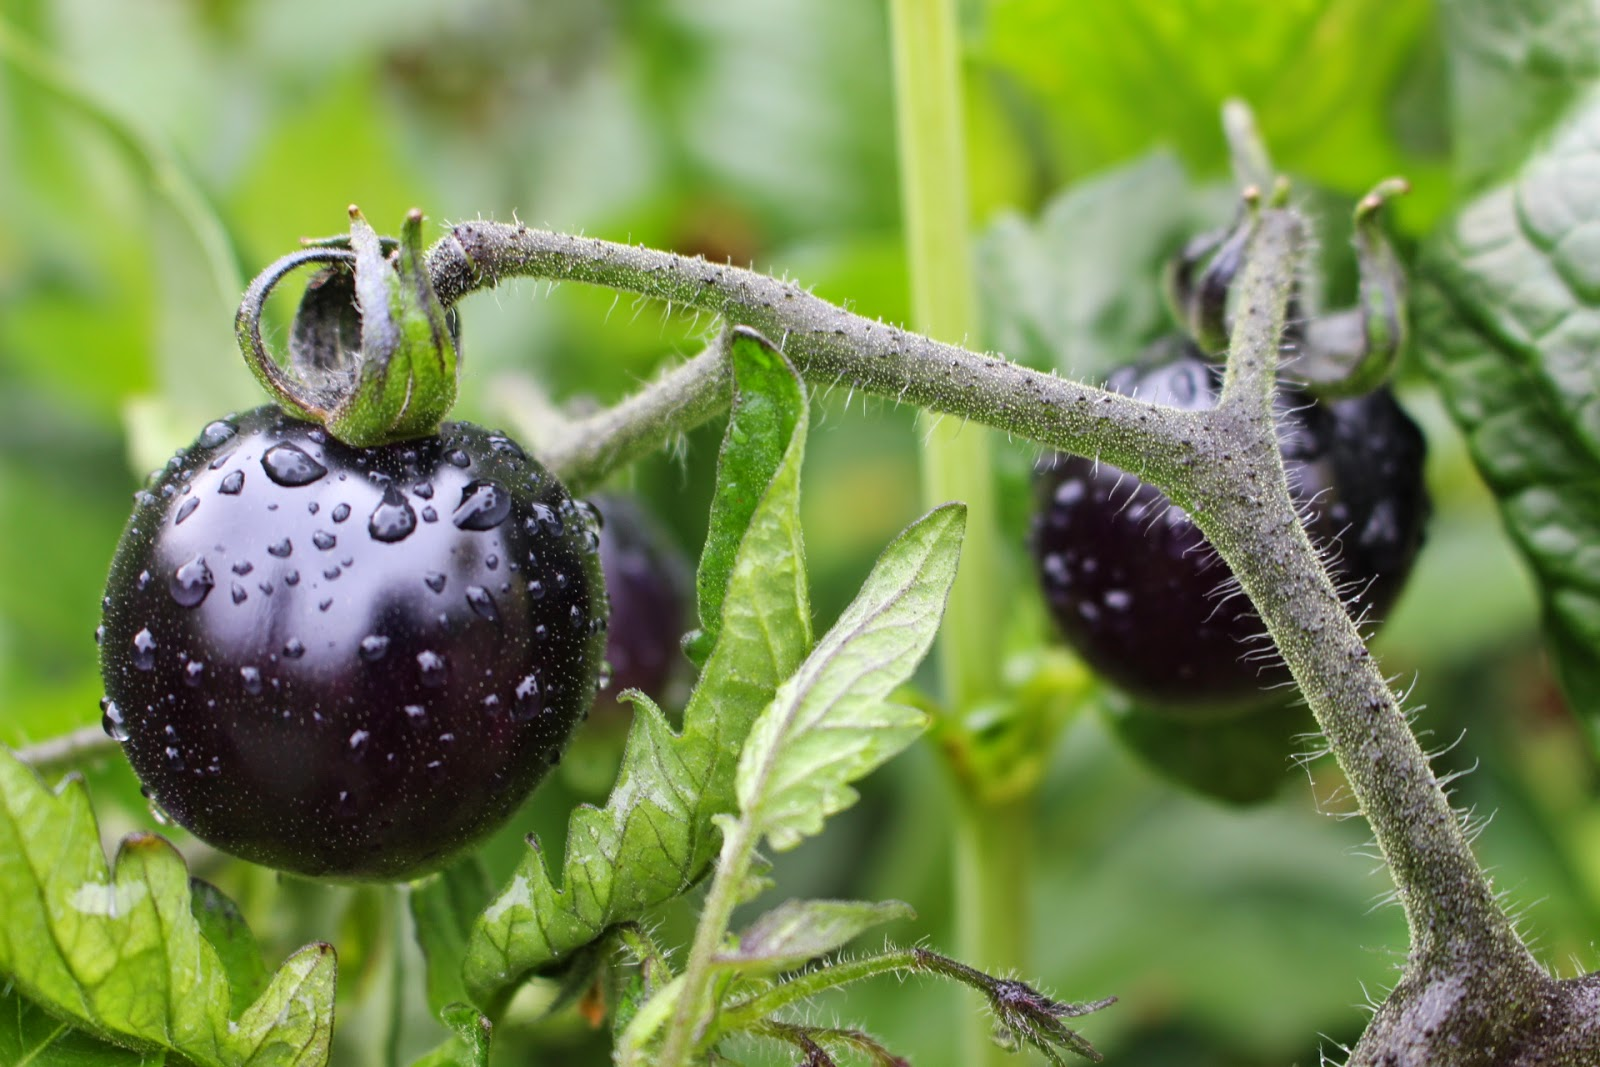 During the growth process, these tomatoes start out green and turn black when exposed to sunlight. Photo: WebLibrary